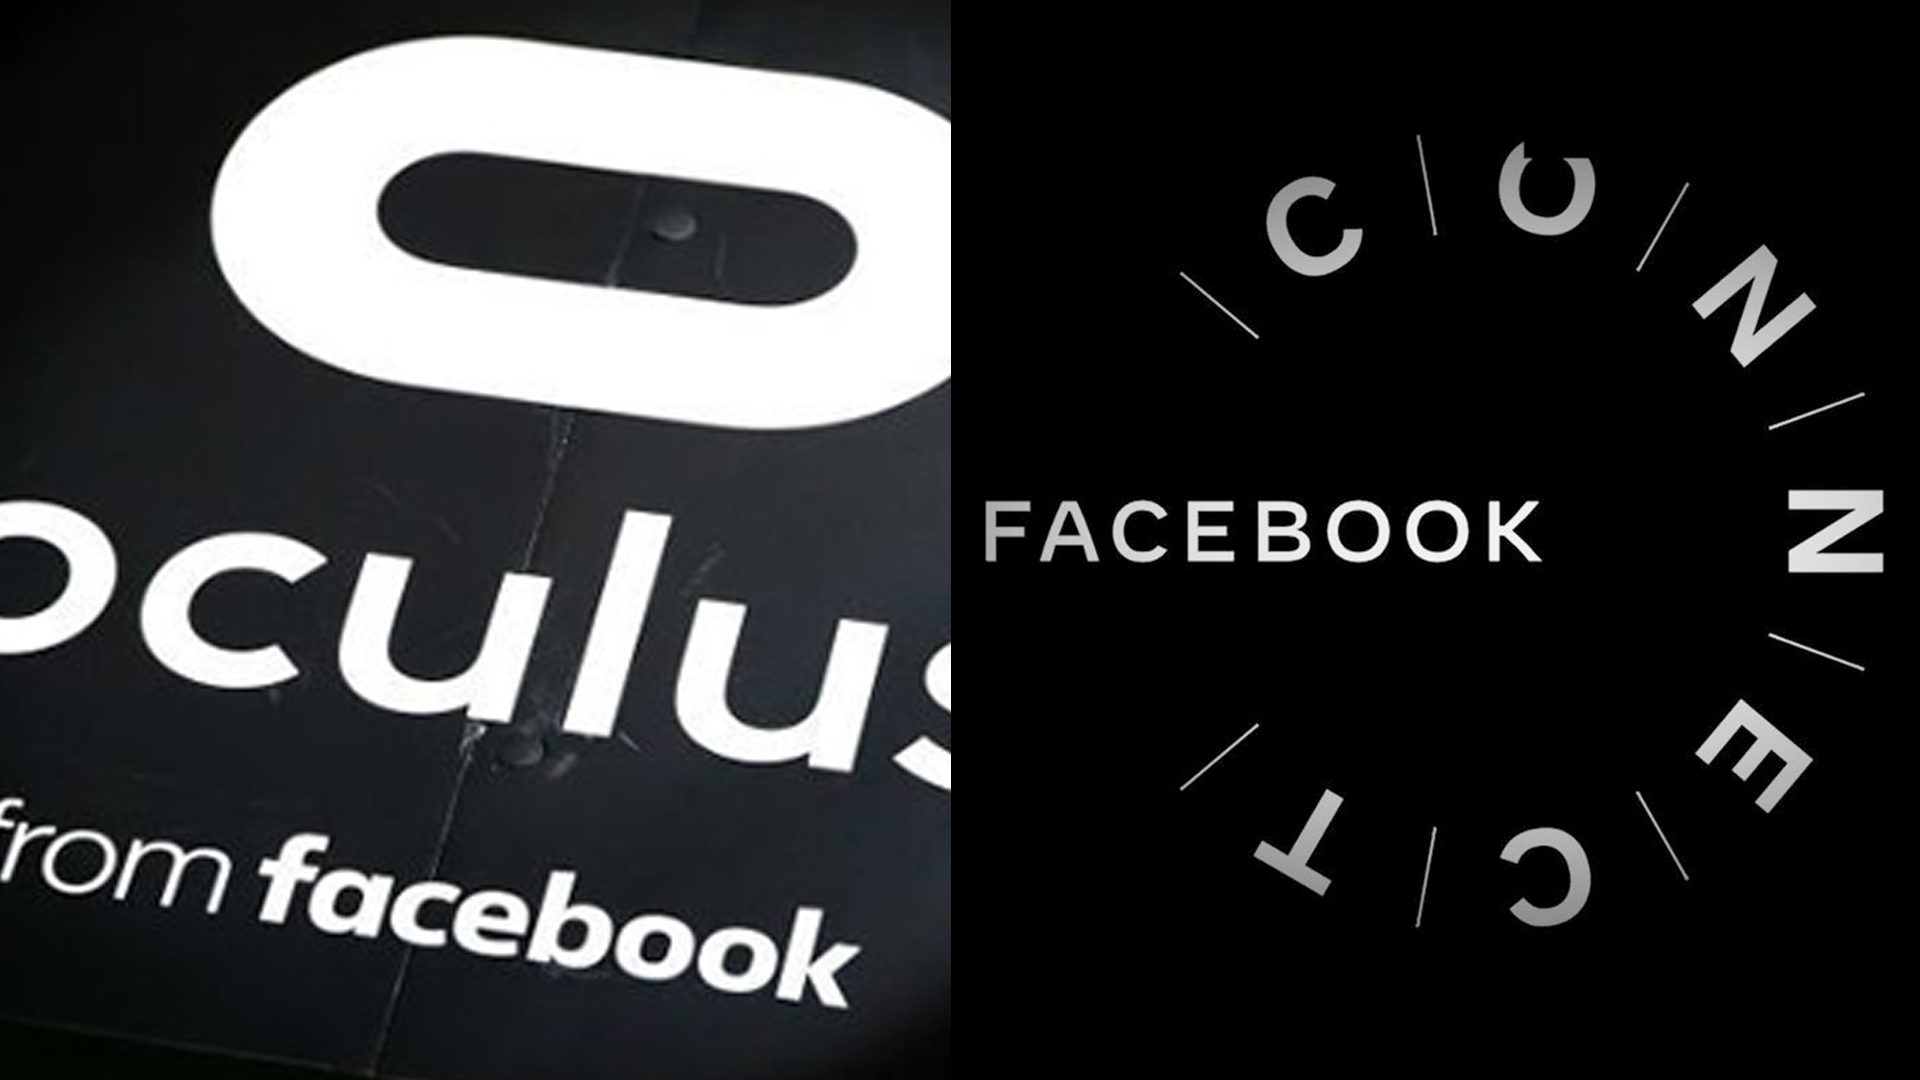 Facebook Connect, Oculus Quest 2